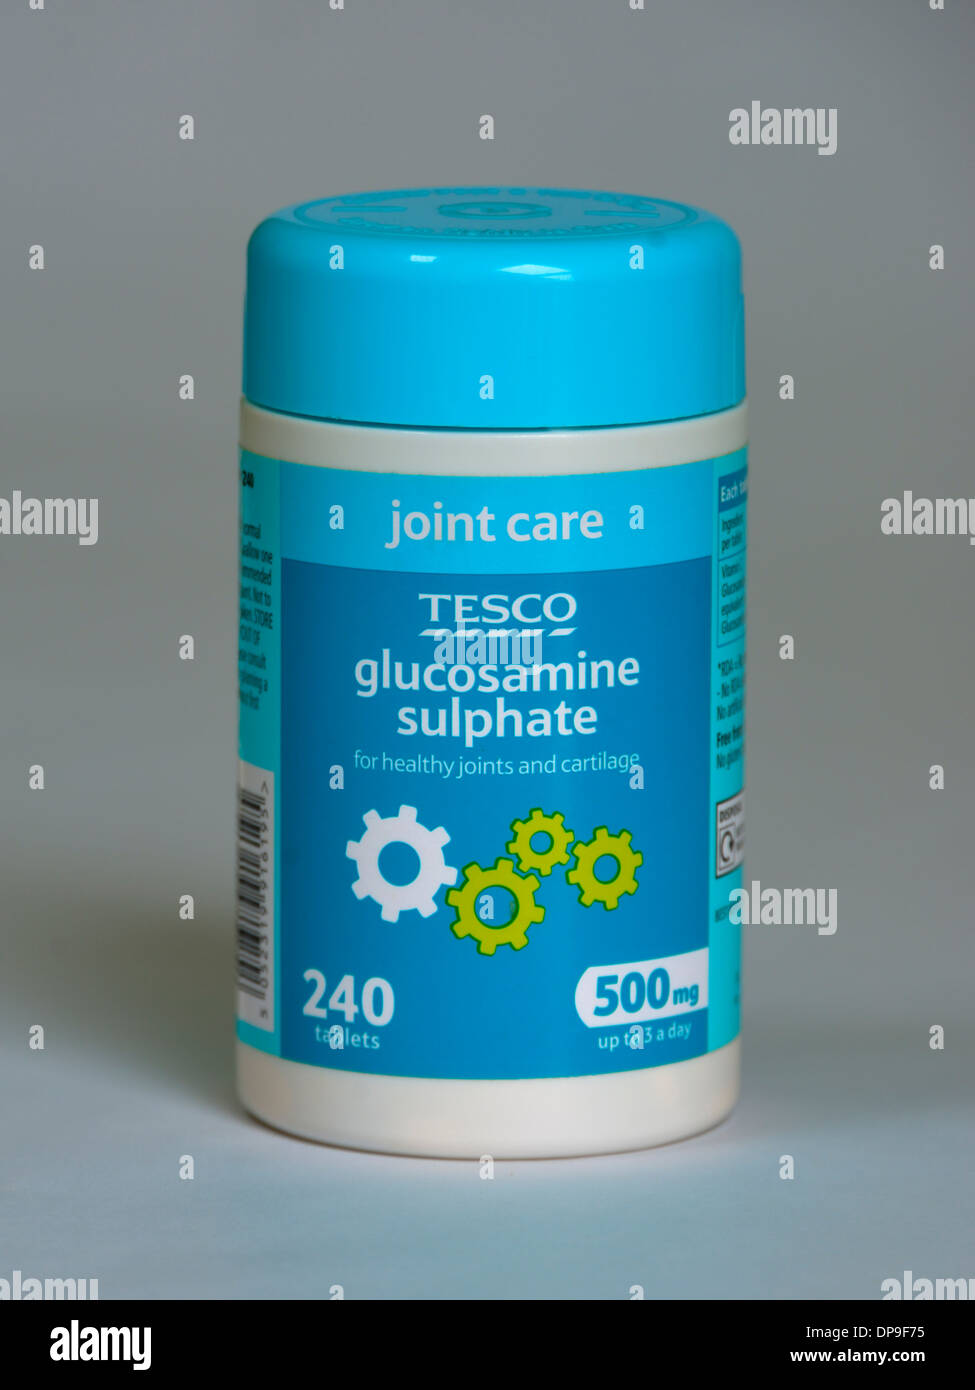 TESCO joint care. glucosamine sulphate for healthy joints and cartilage. Pack of 240 tablets. 500mg. - Stock Image